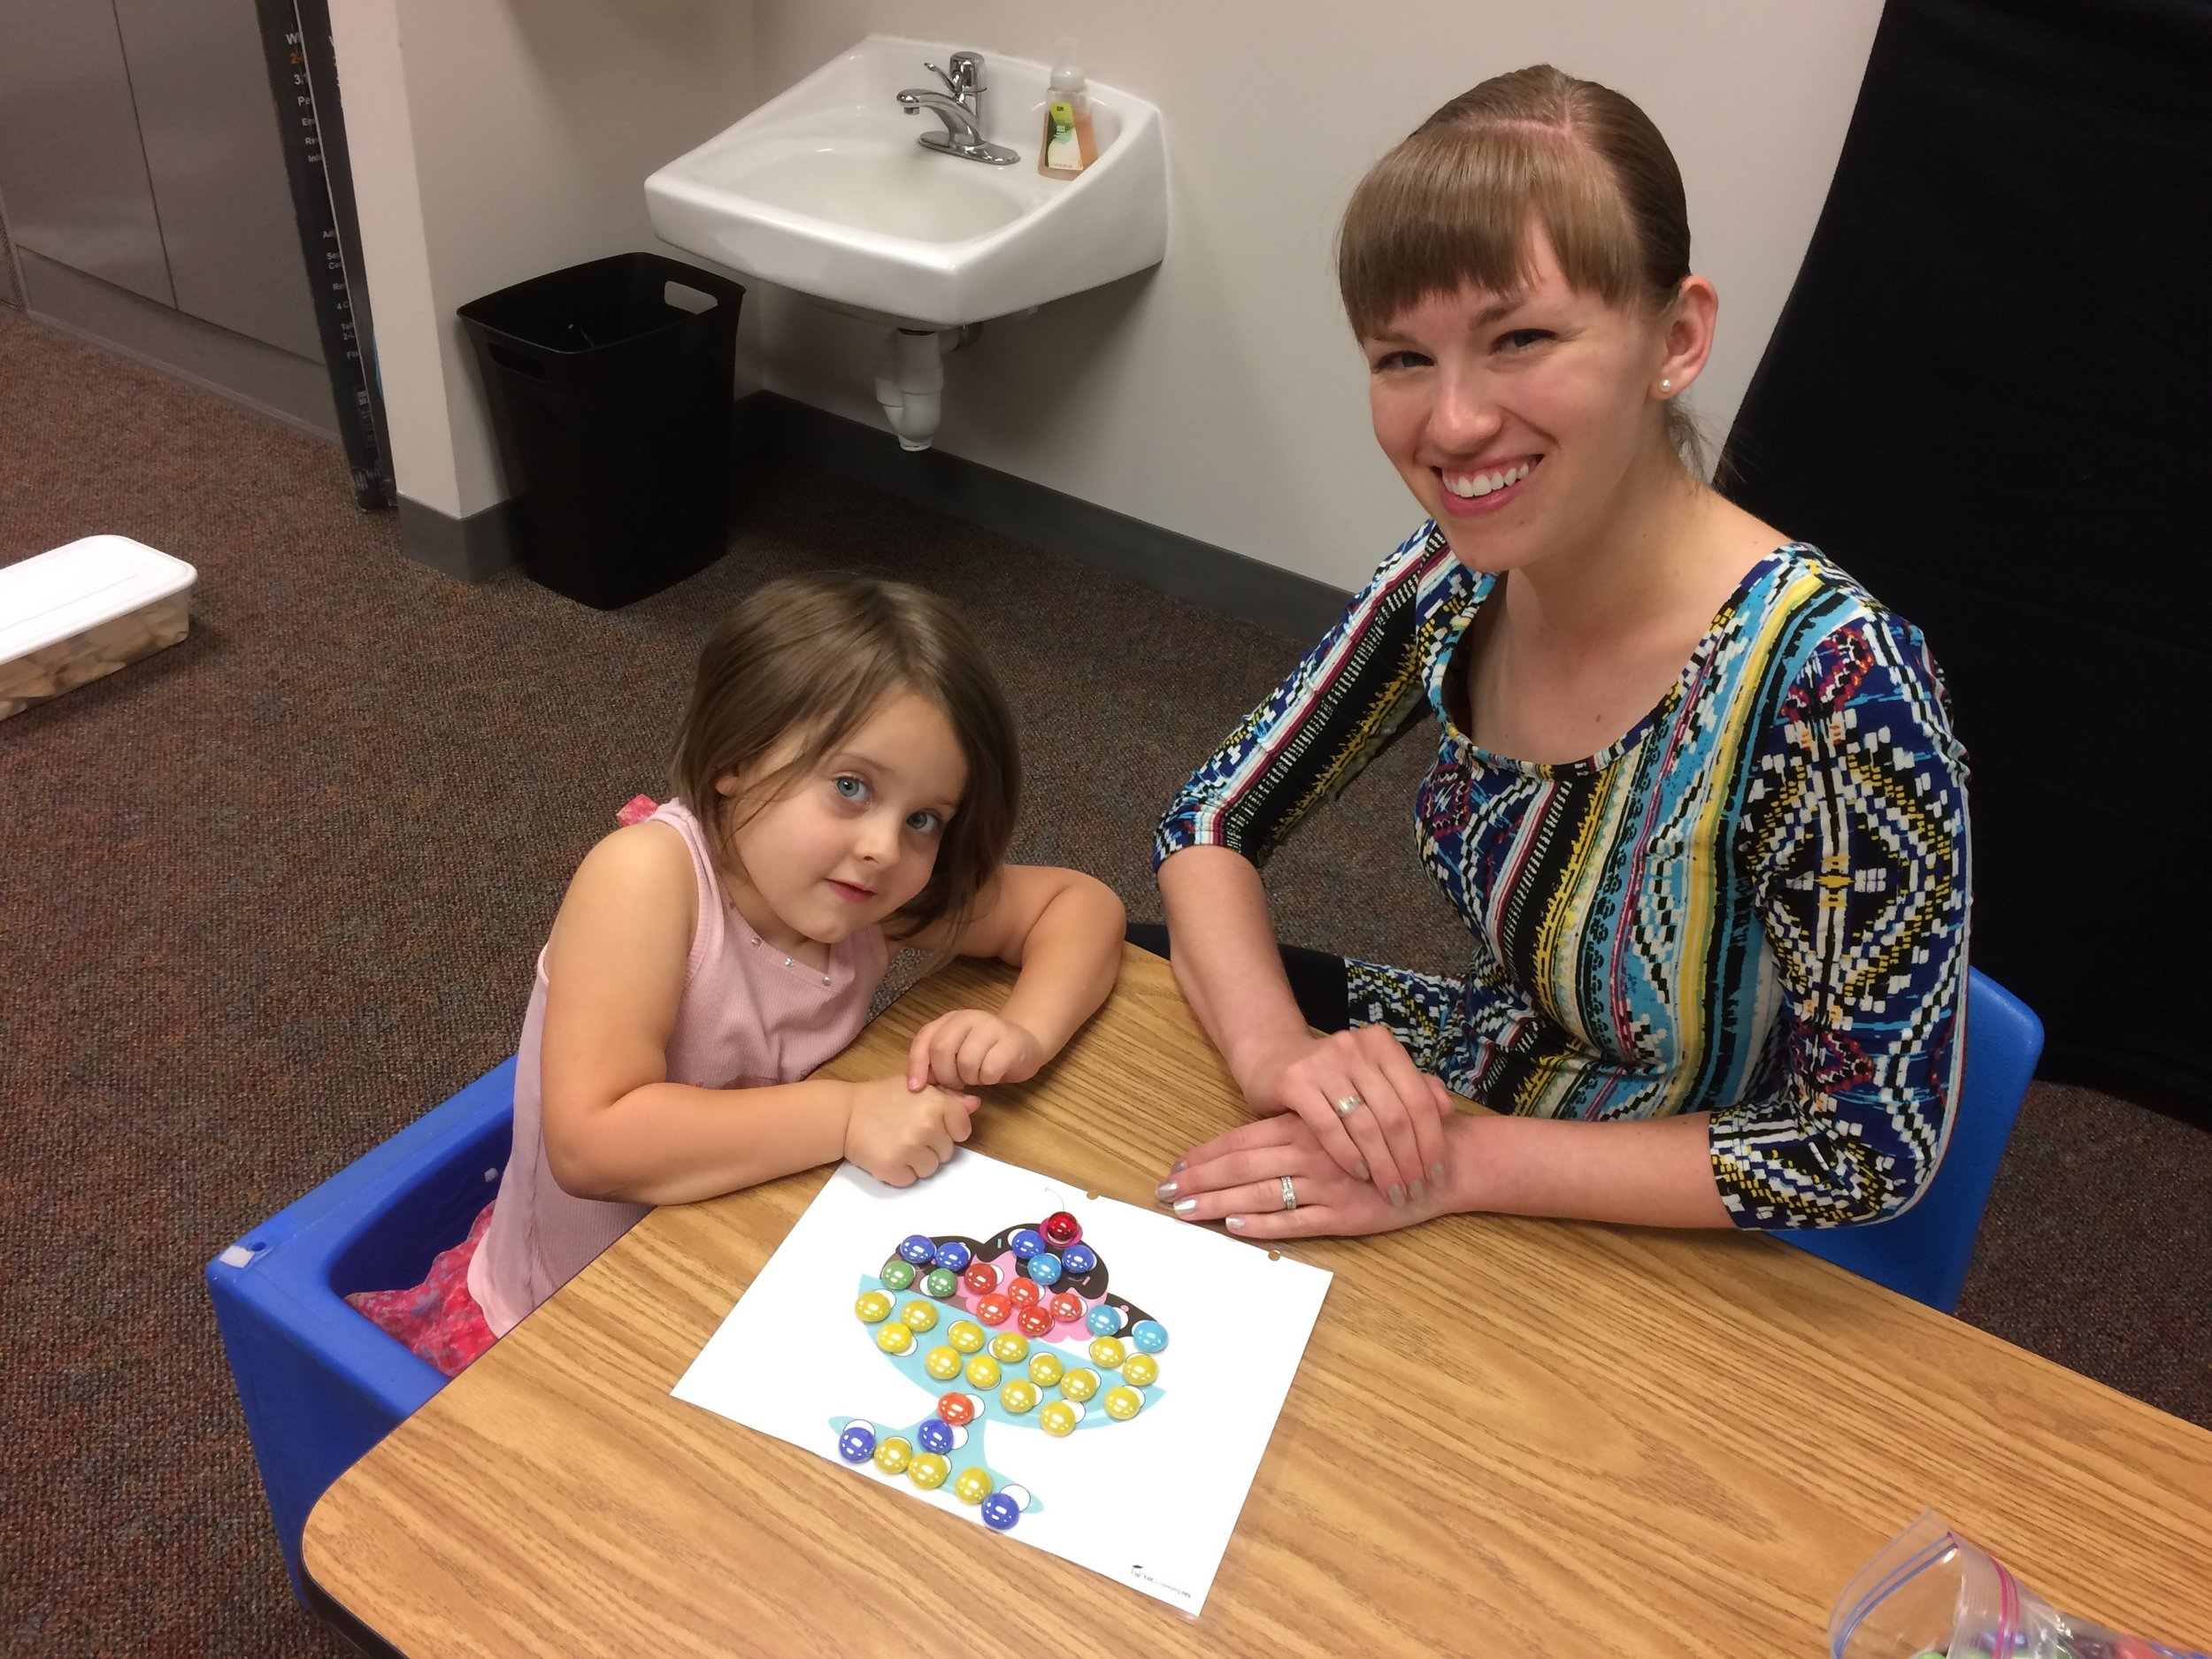 Holly Schlautman with Child at Lincoln Clinic 07.2017.jpg